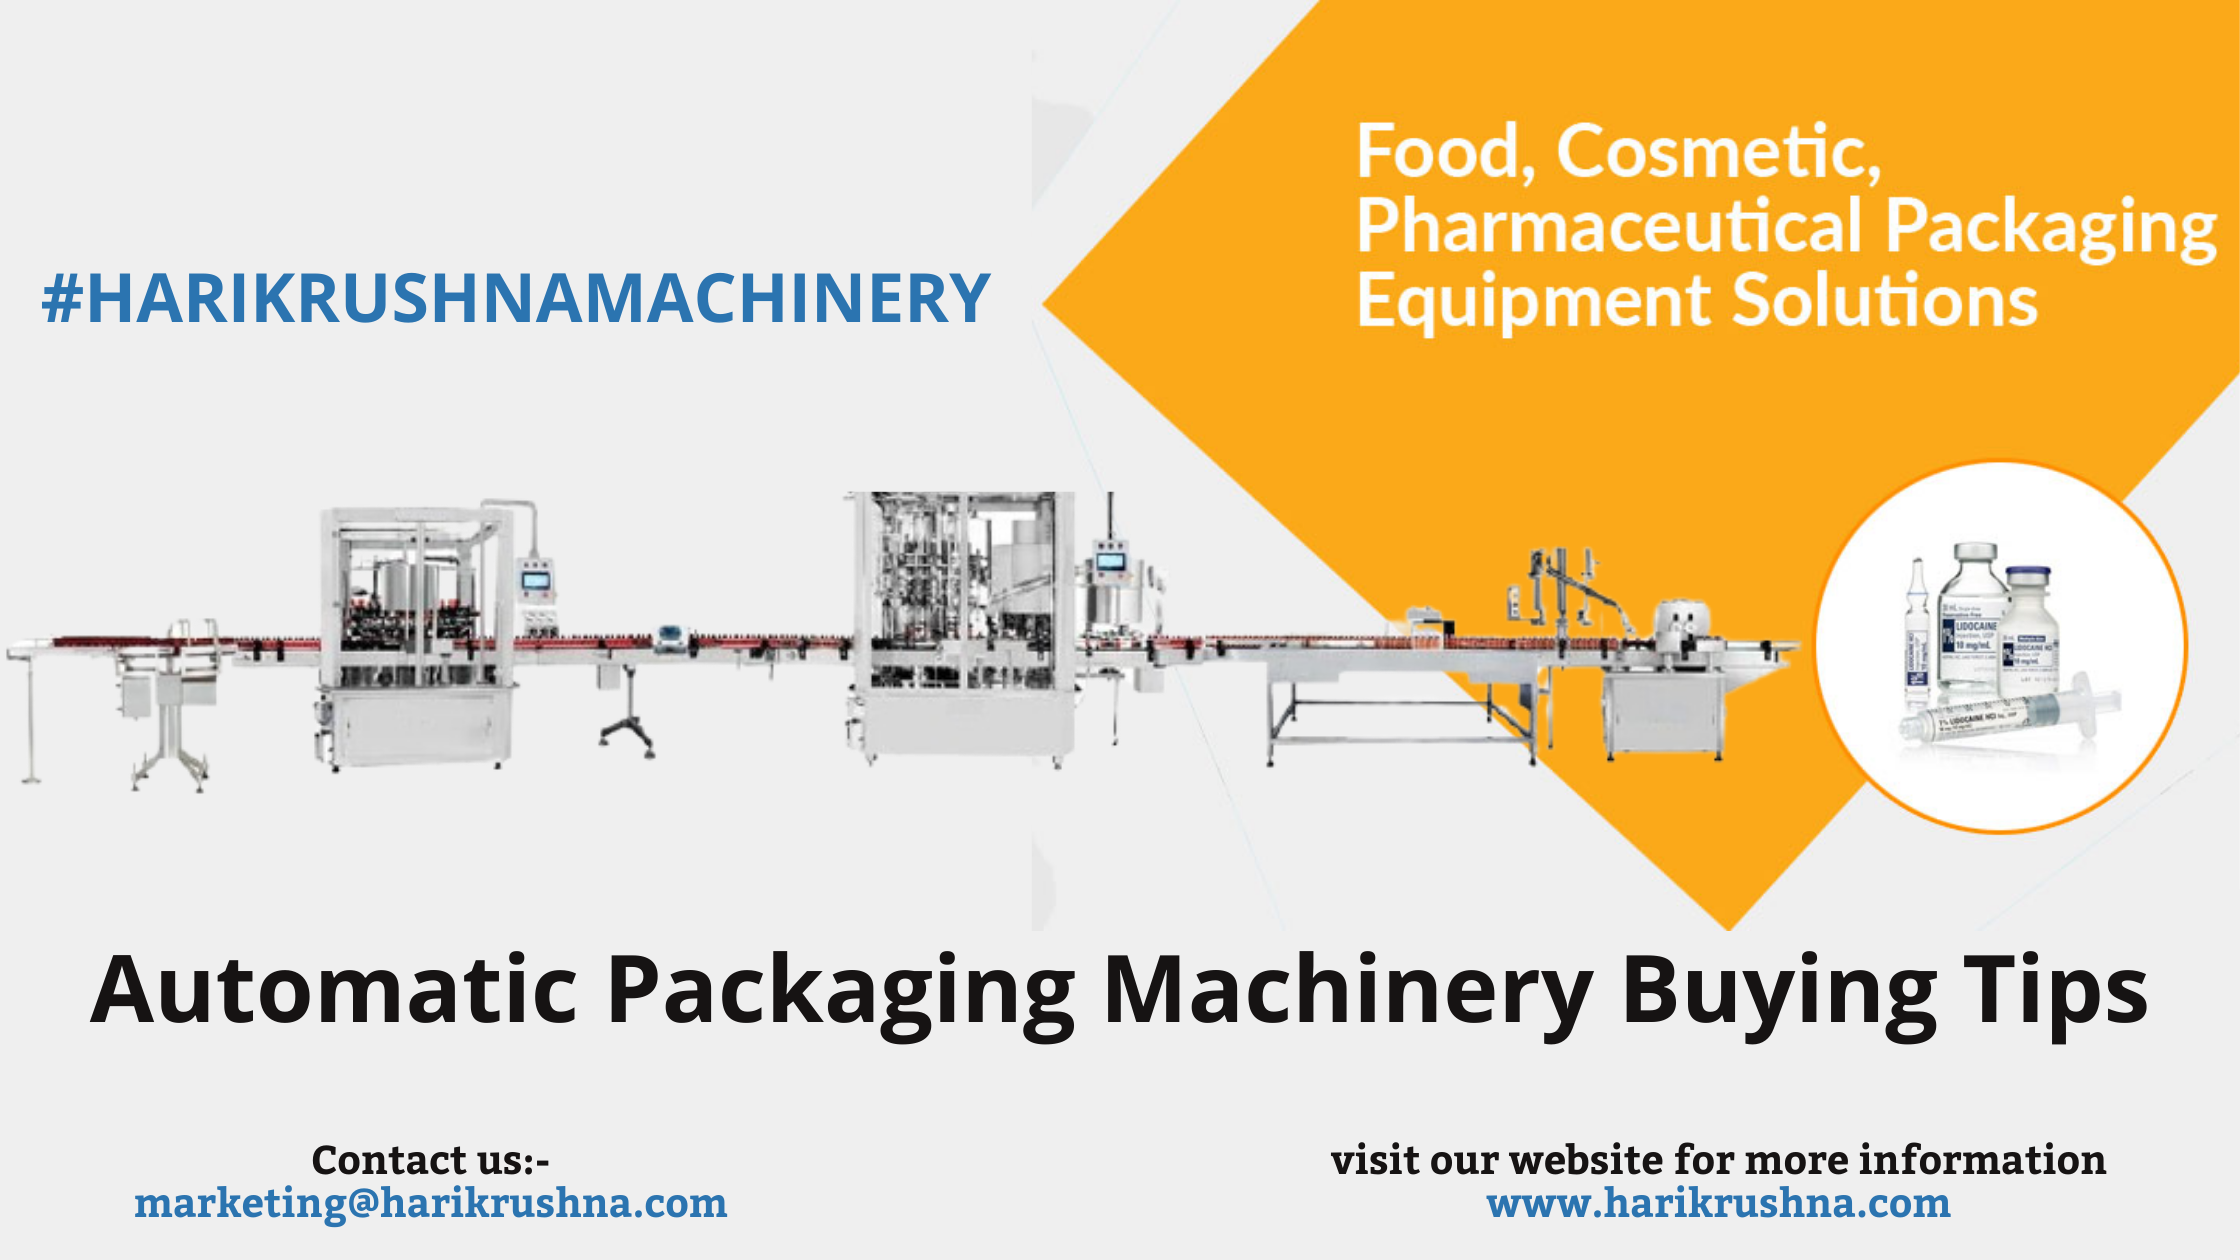 Automatic Packaging Machinery Buying Tips - Packaging Machinery Equipements